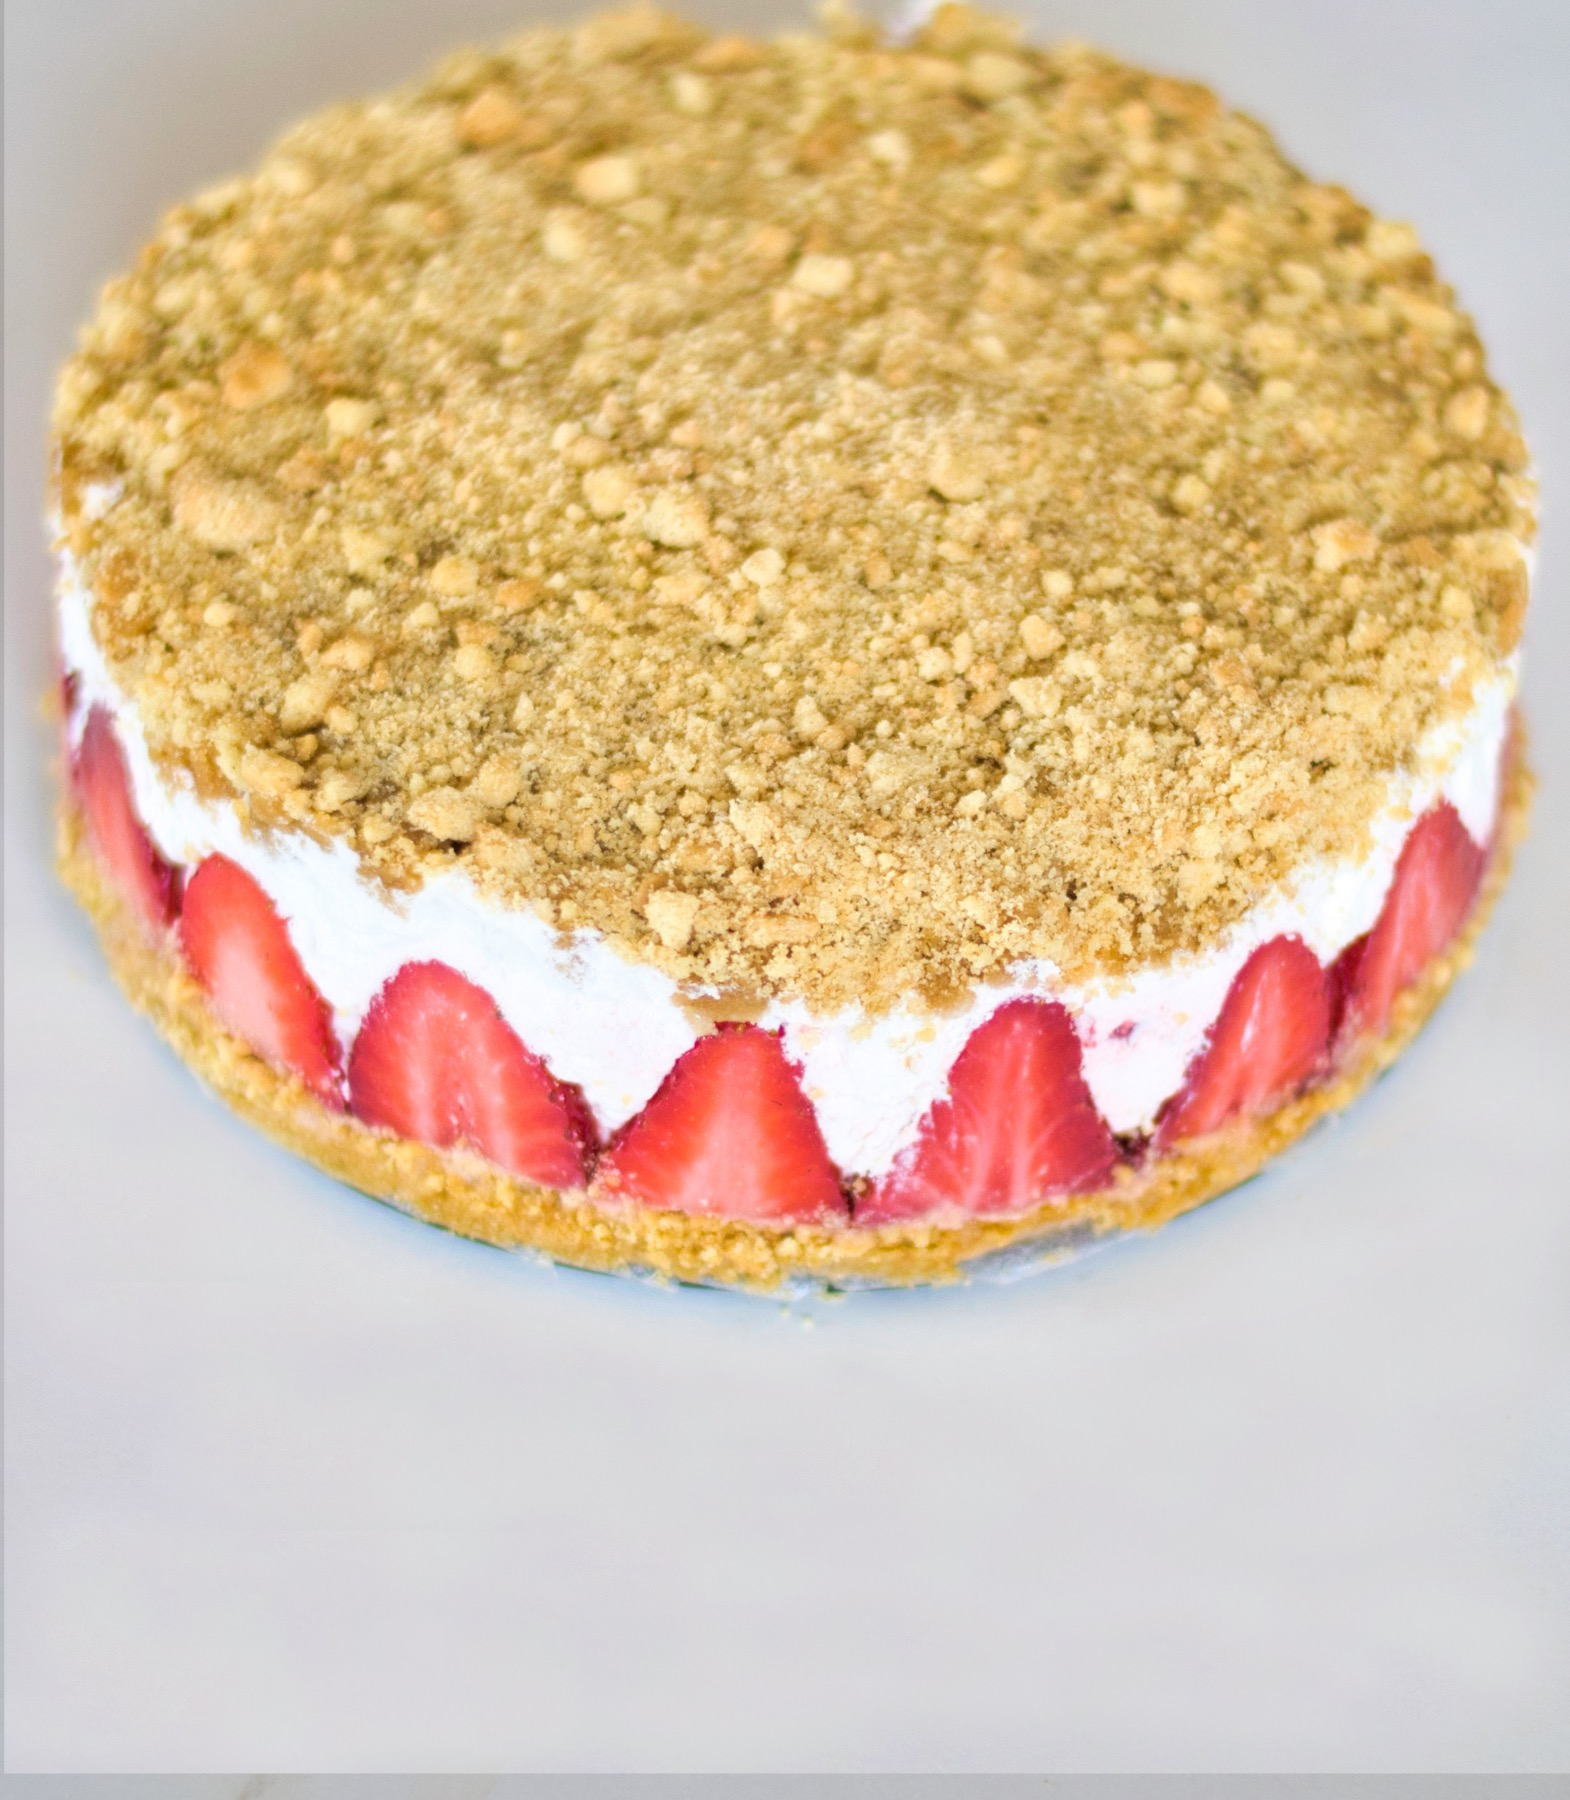 finished strawberry cream crumble before cutting